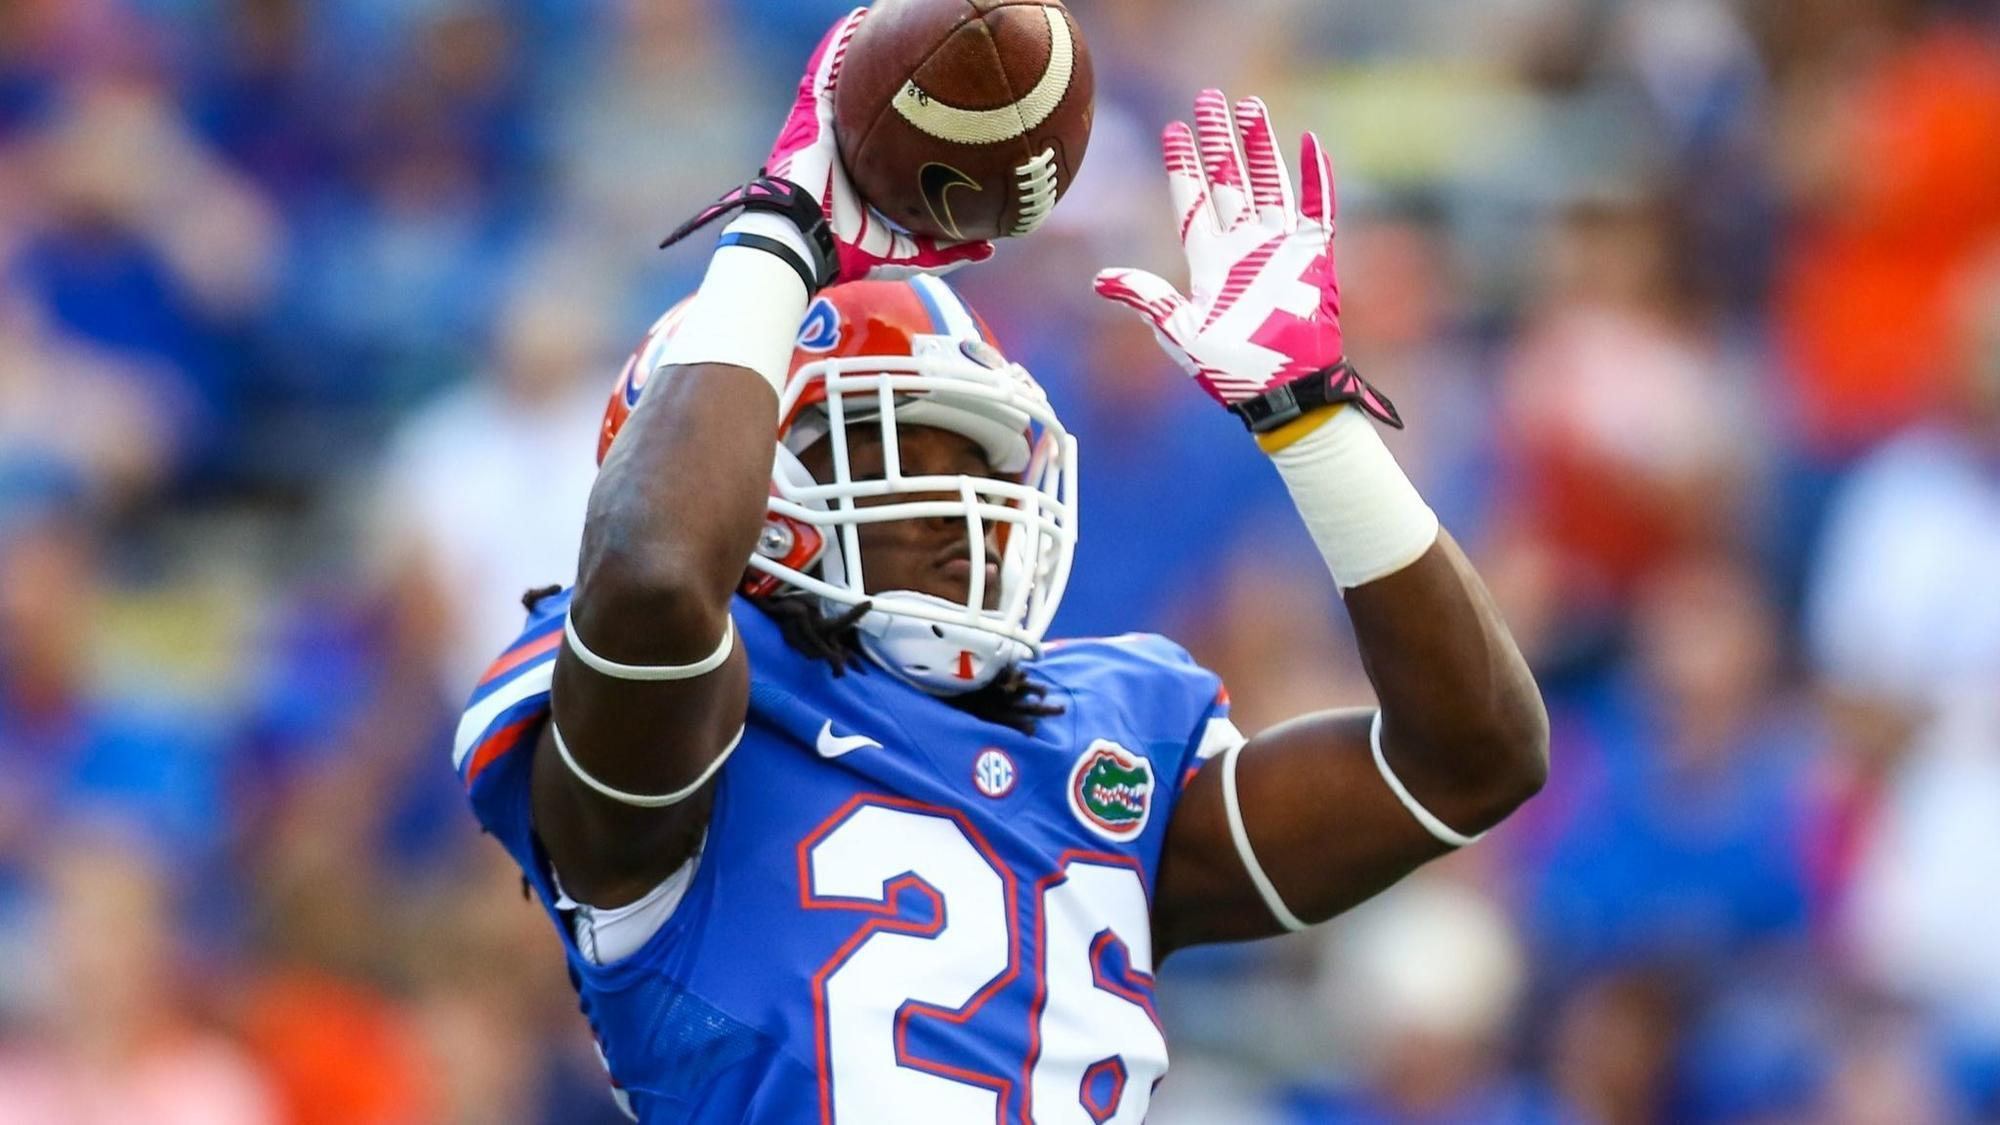 Os-sp-marcell-harris-49ers-gators-dr-phillips-20180502